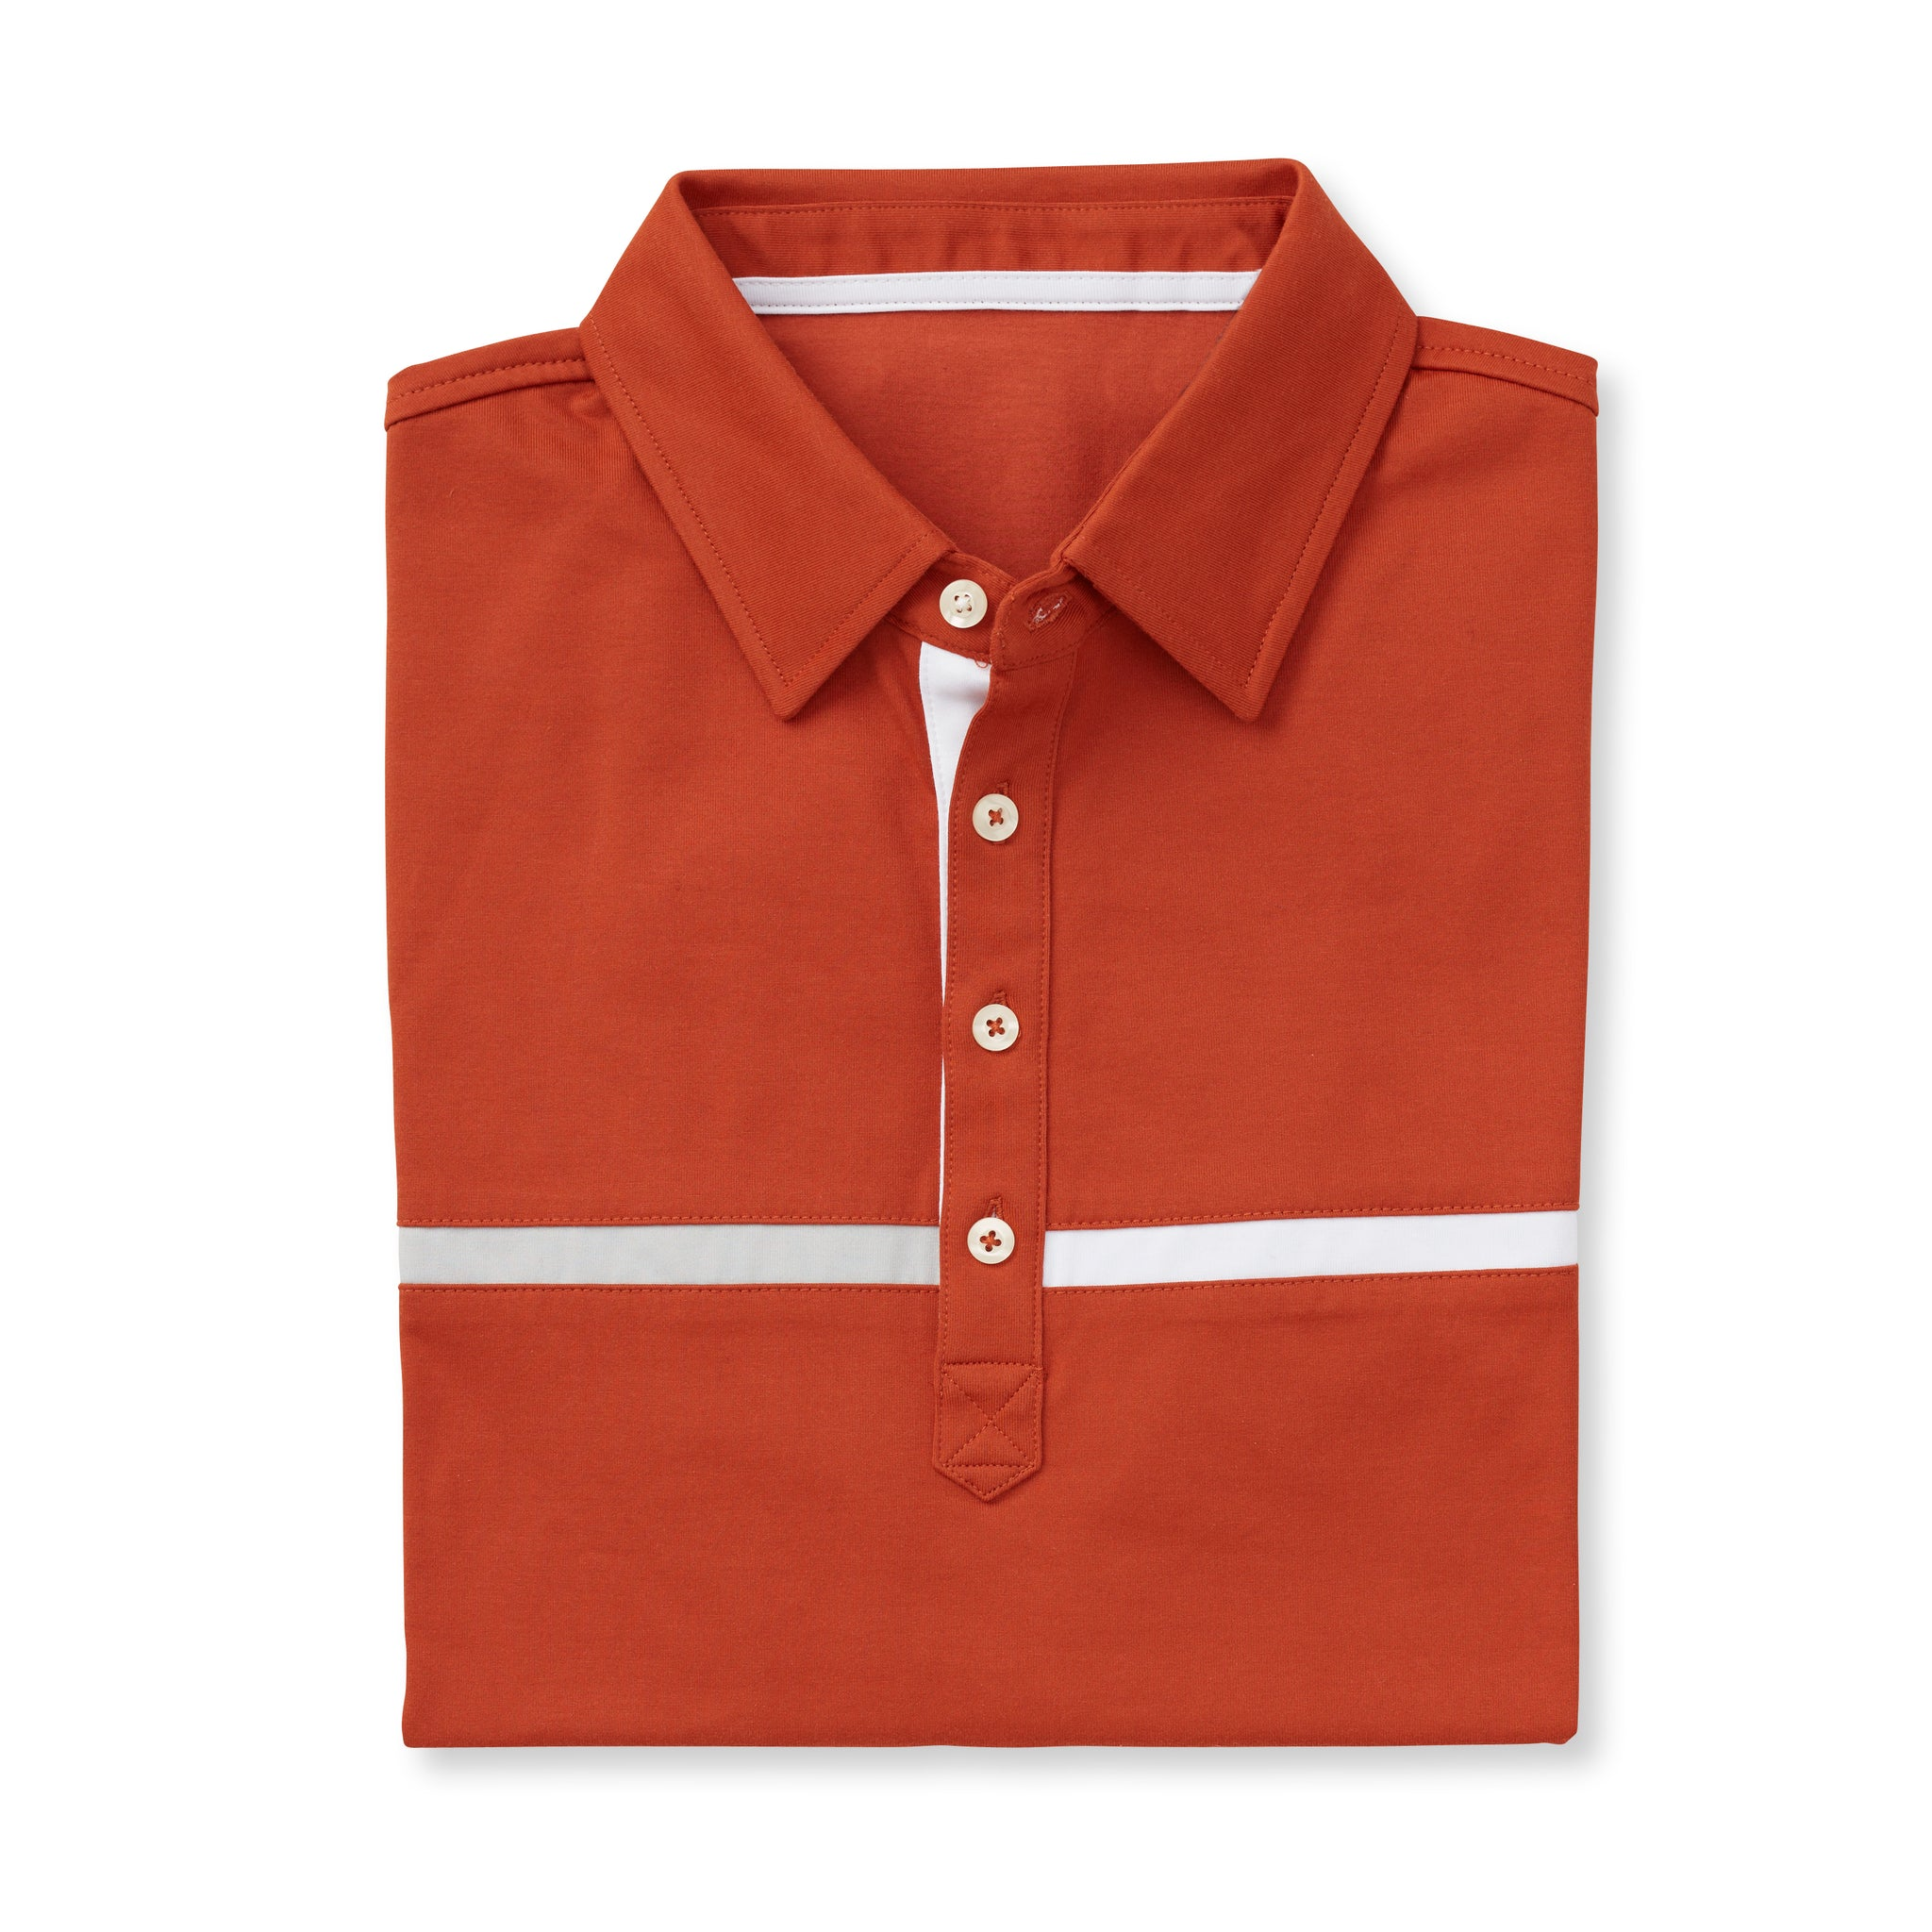 LUXTEC Champions Color Block Short Sleeve Polo - Burnt Orange IS72420